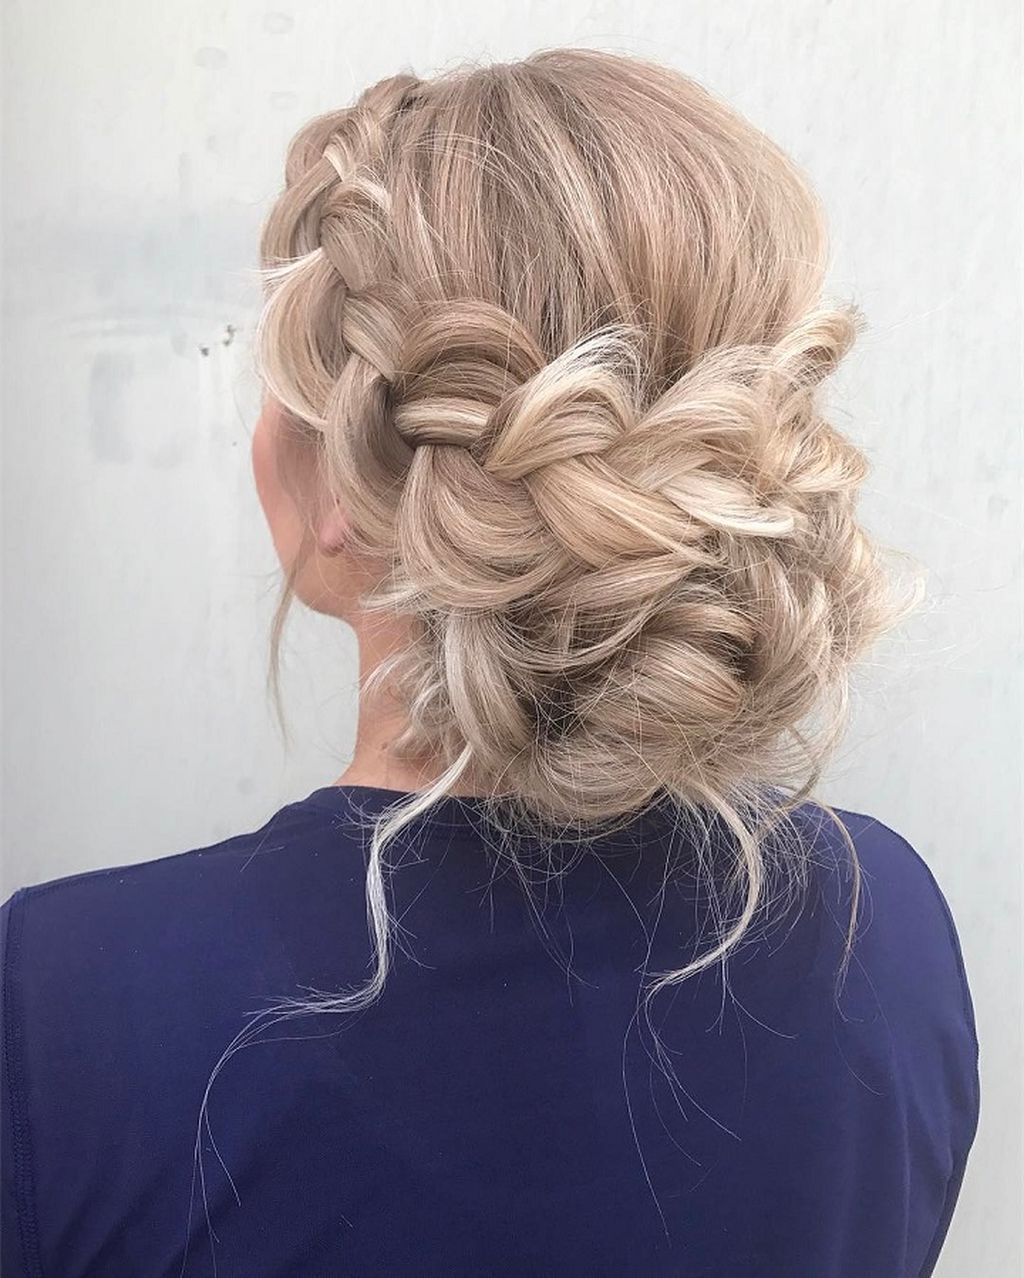 135 Stunning Bohemian Wedding Hairstyle Ideas Every Women Will Love In Bohemian Short Hairstyles (View 11 of 25)